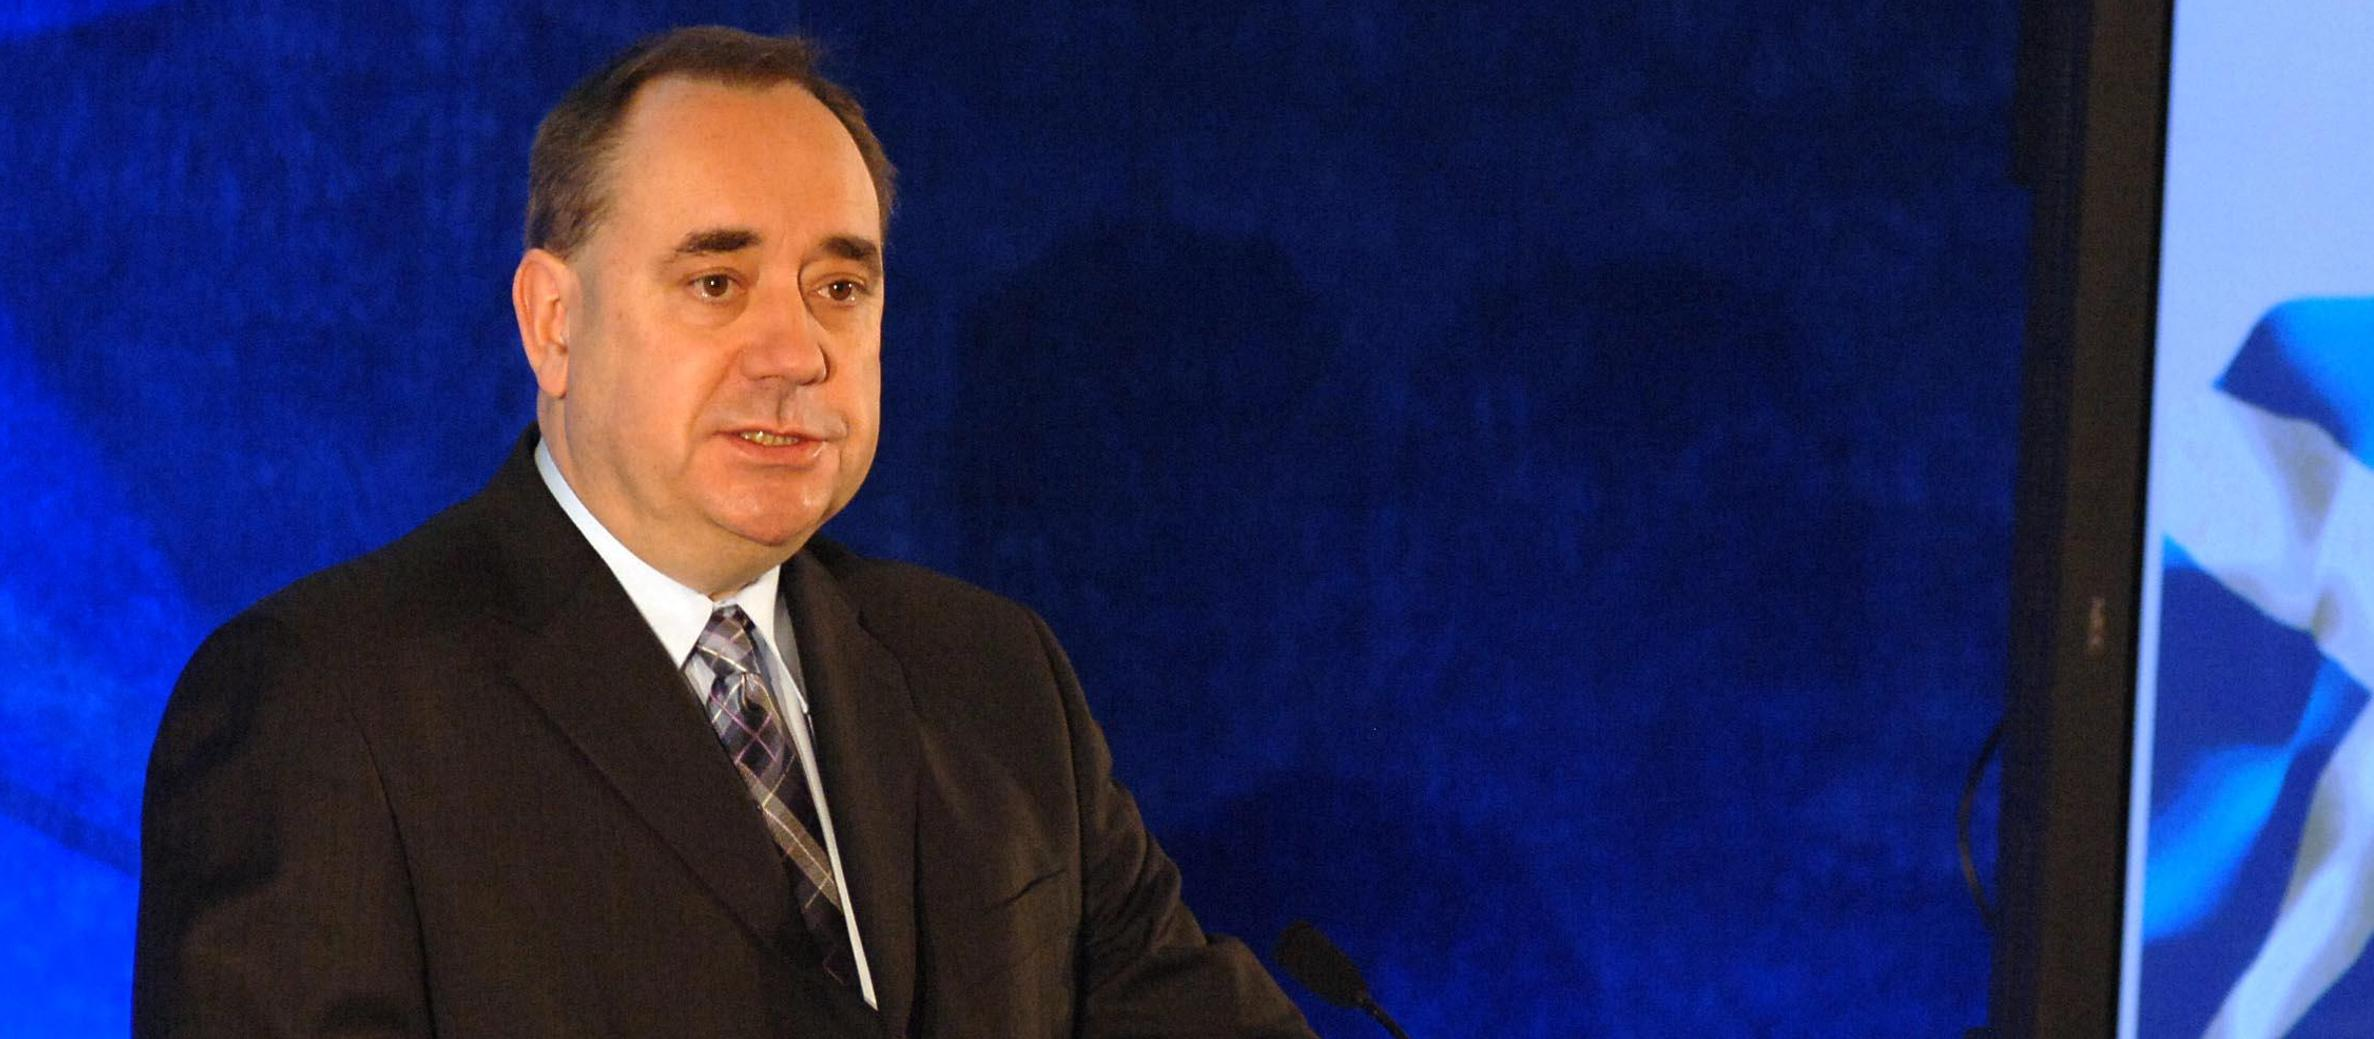 Alex Salmond criticised for rebuking Israelis over Holocaust speech